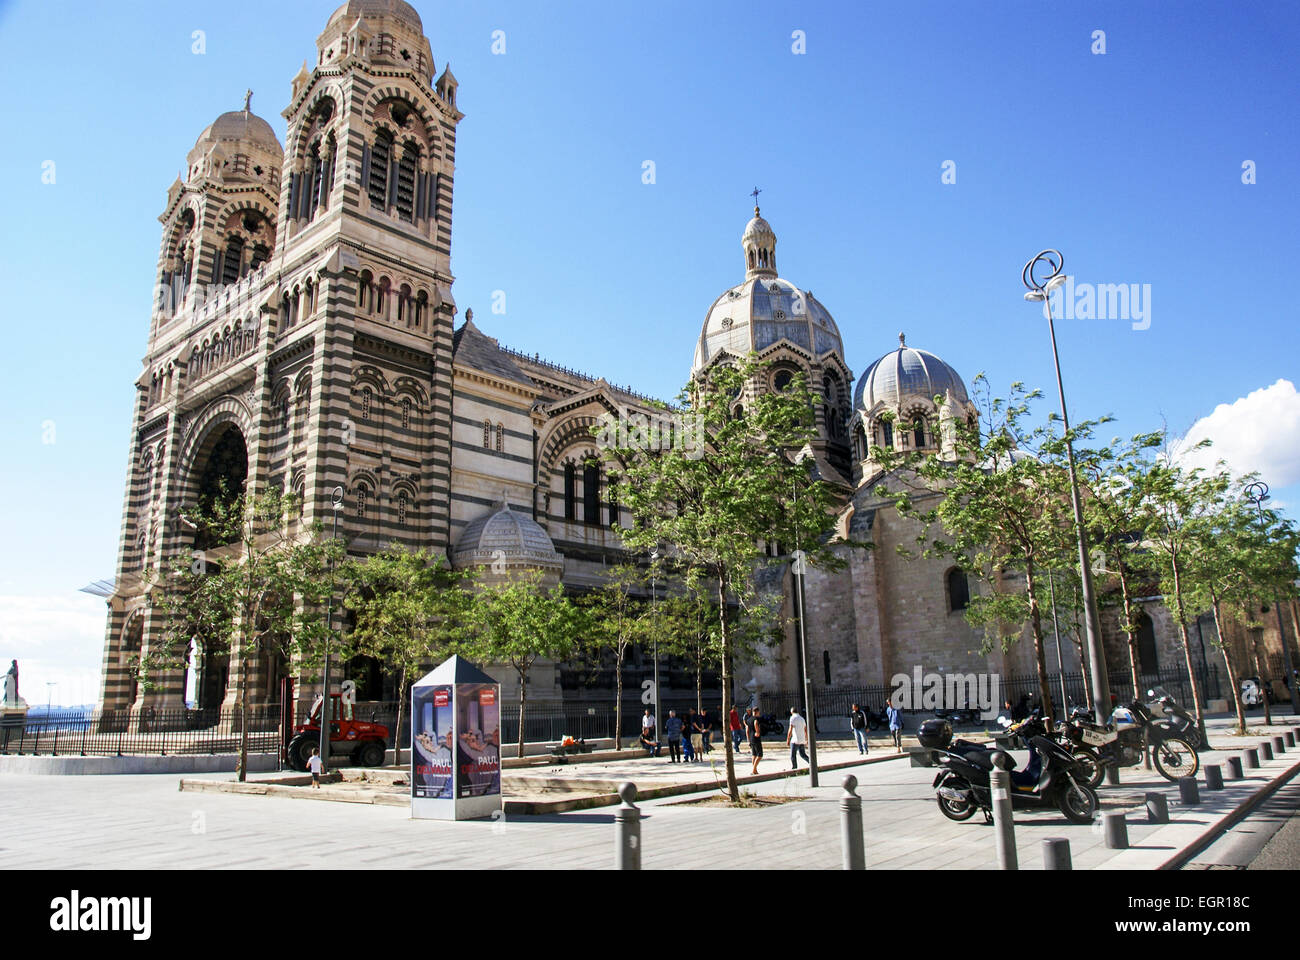 Marseille Cathedral, Roman Catholic cathedral in Marseille, southern France - Stock Image